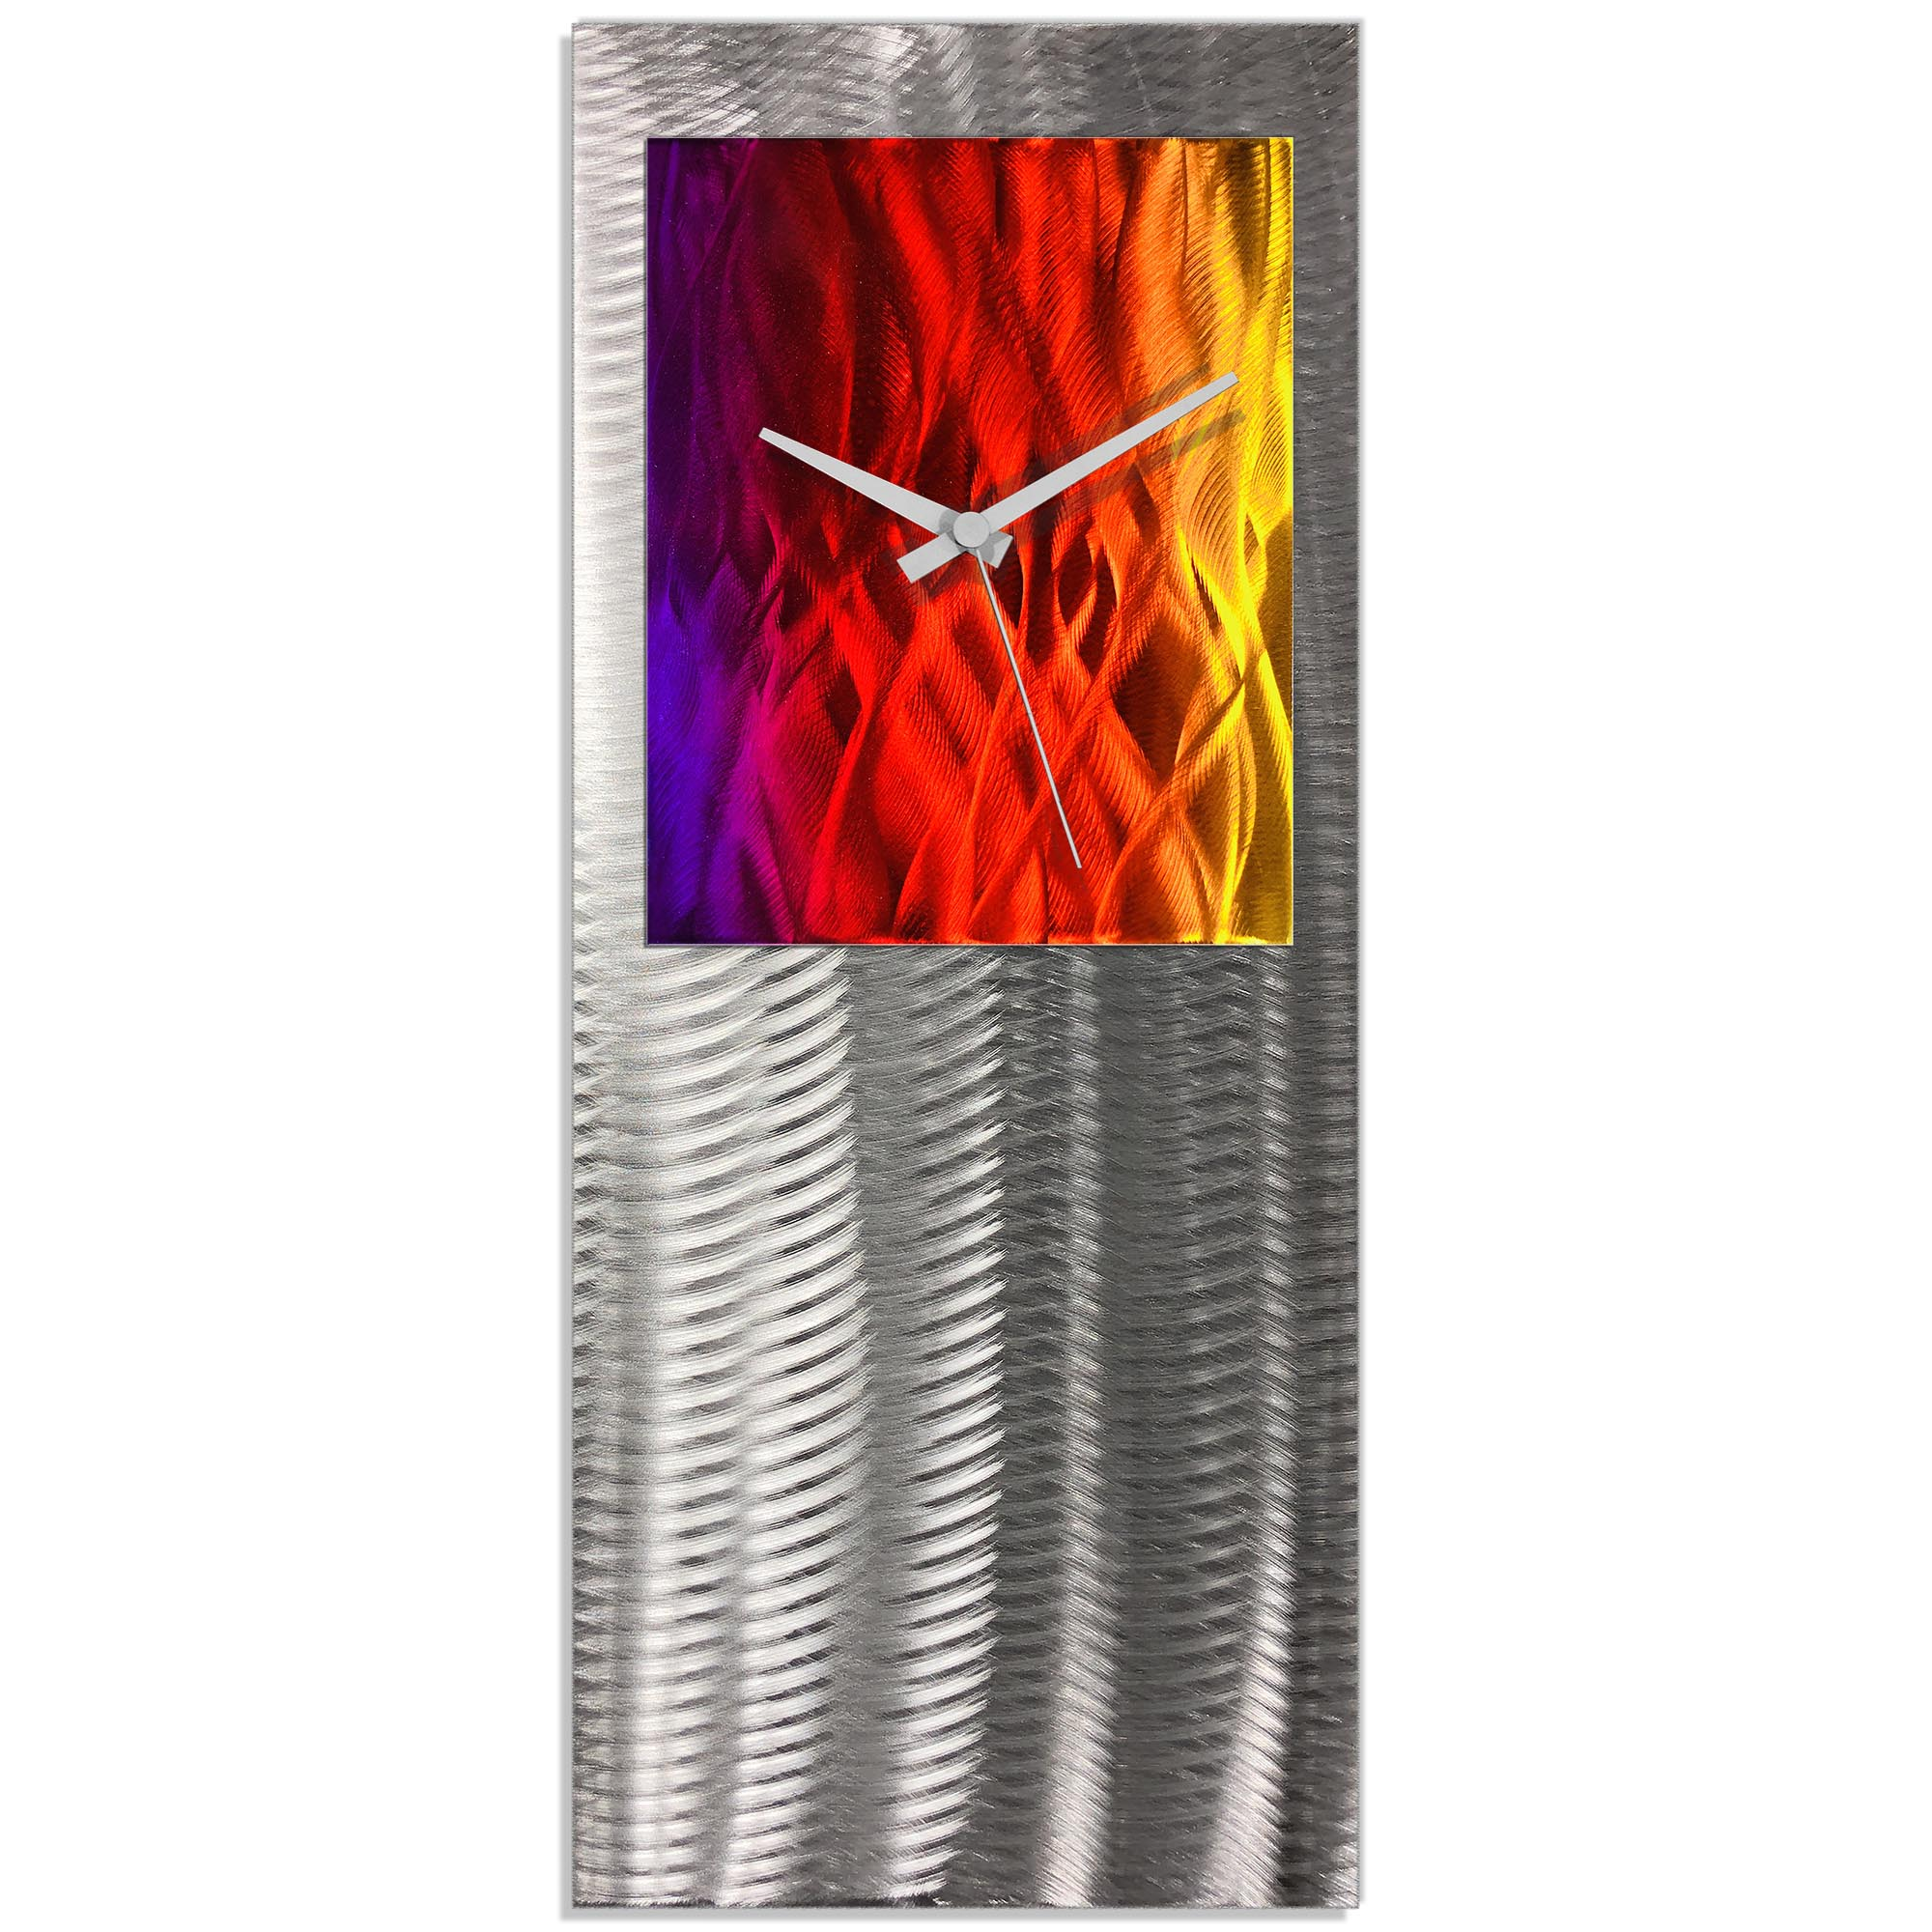 Metal Art Studio Abstract Decor Sunrise Studio Clock 10in x 24in